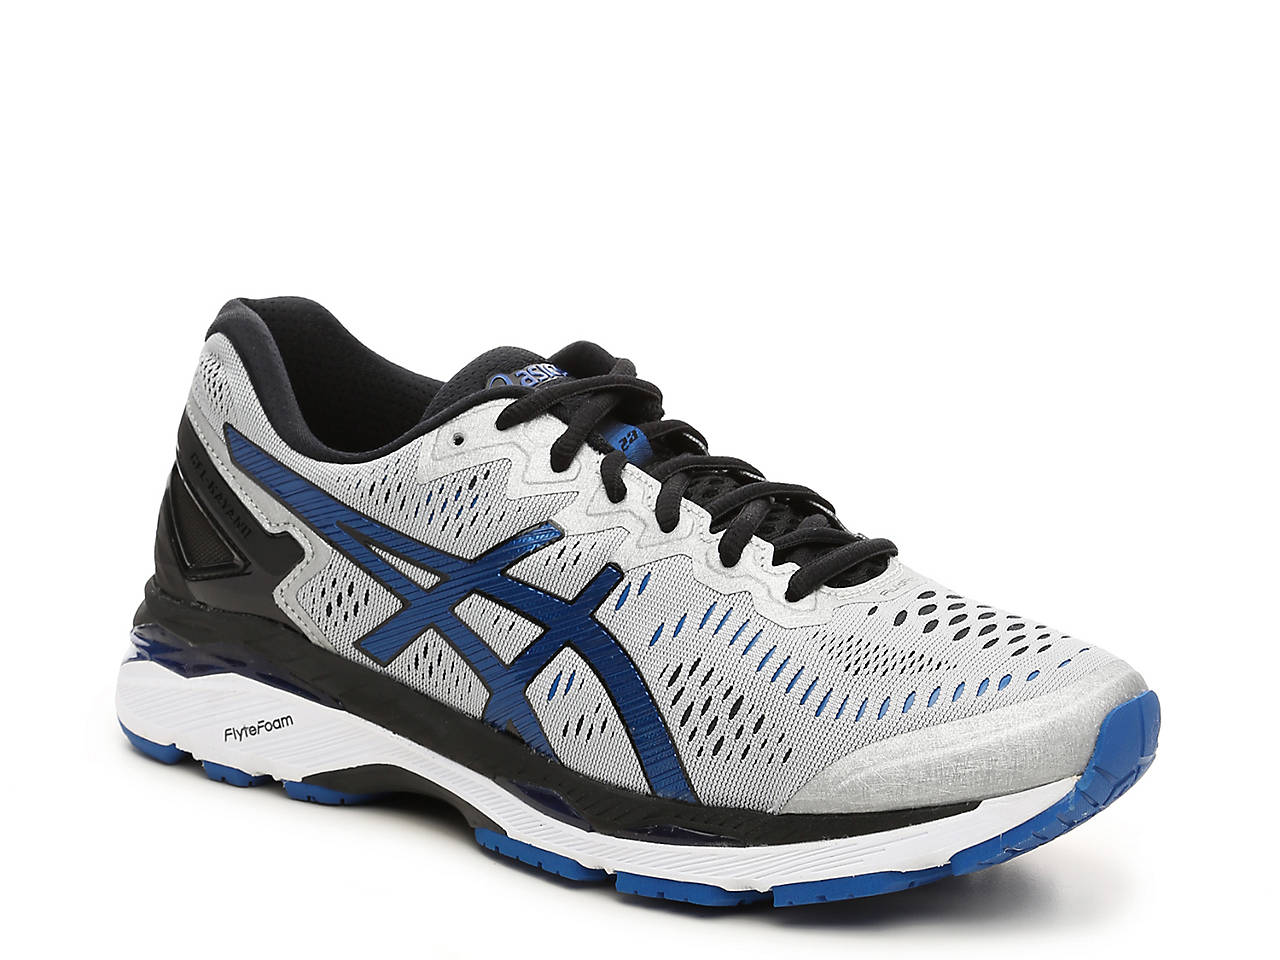 quality design aba12 dfbe3 GEL-Kayano 23 Performance Running Shoe - Men's